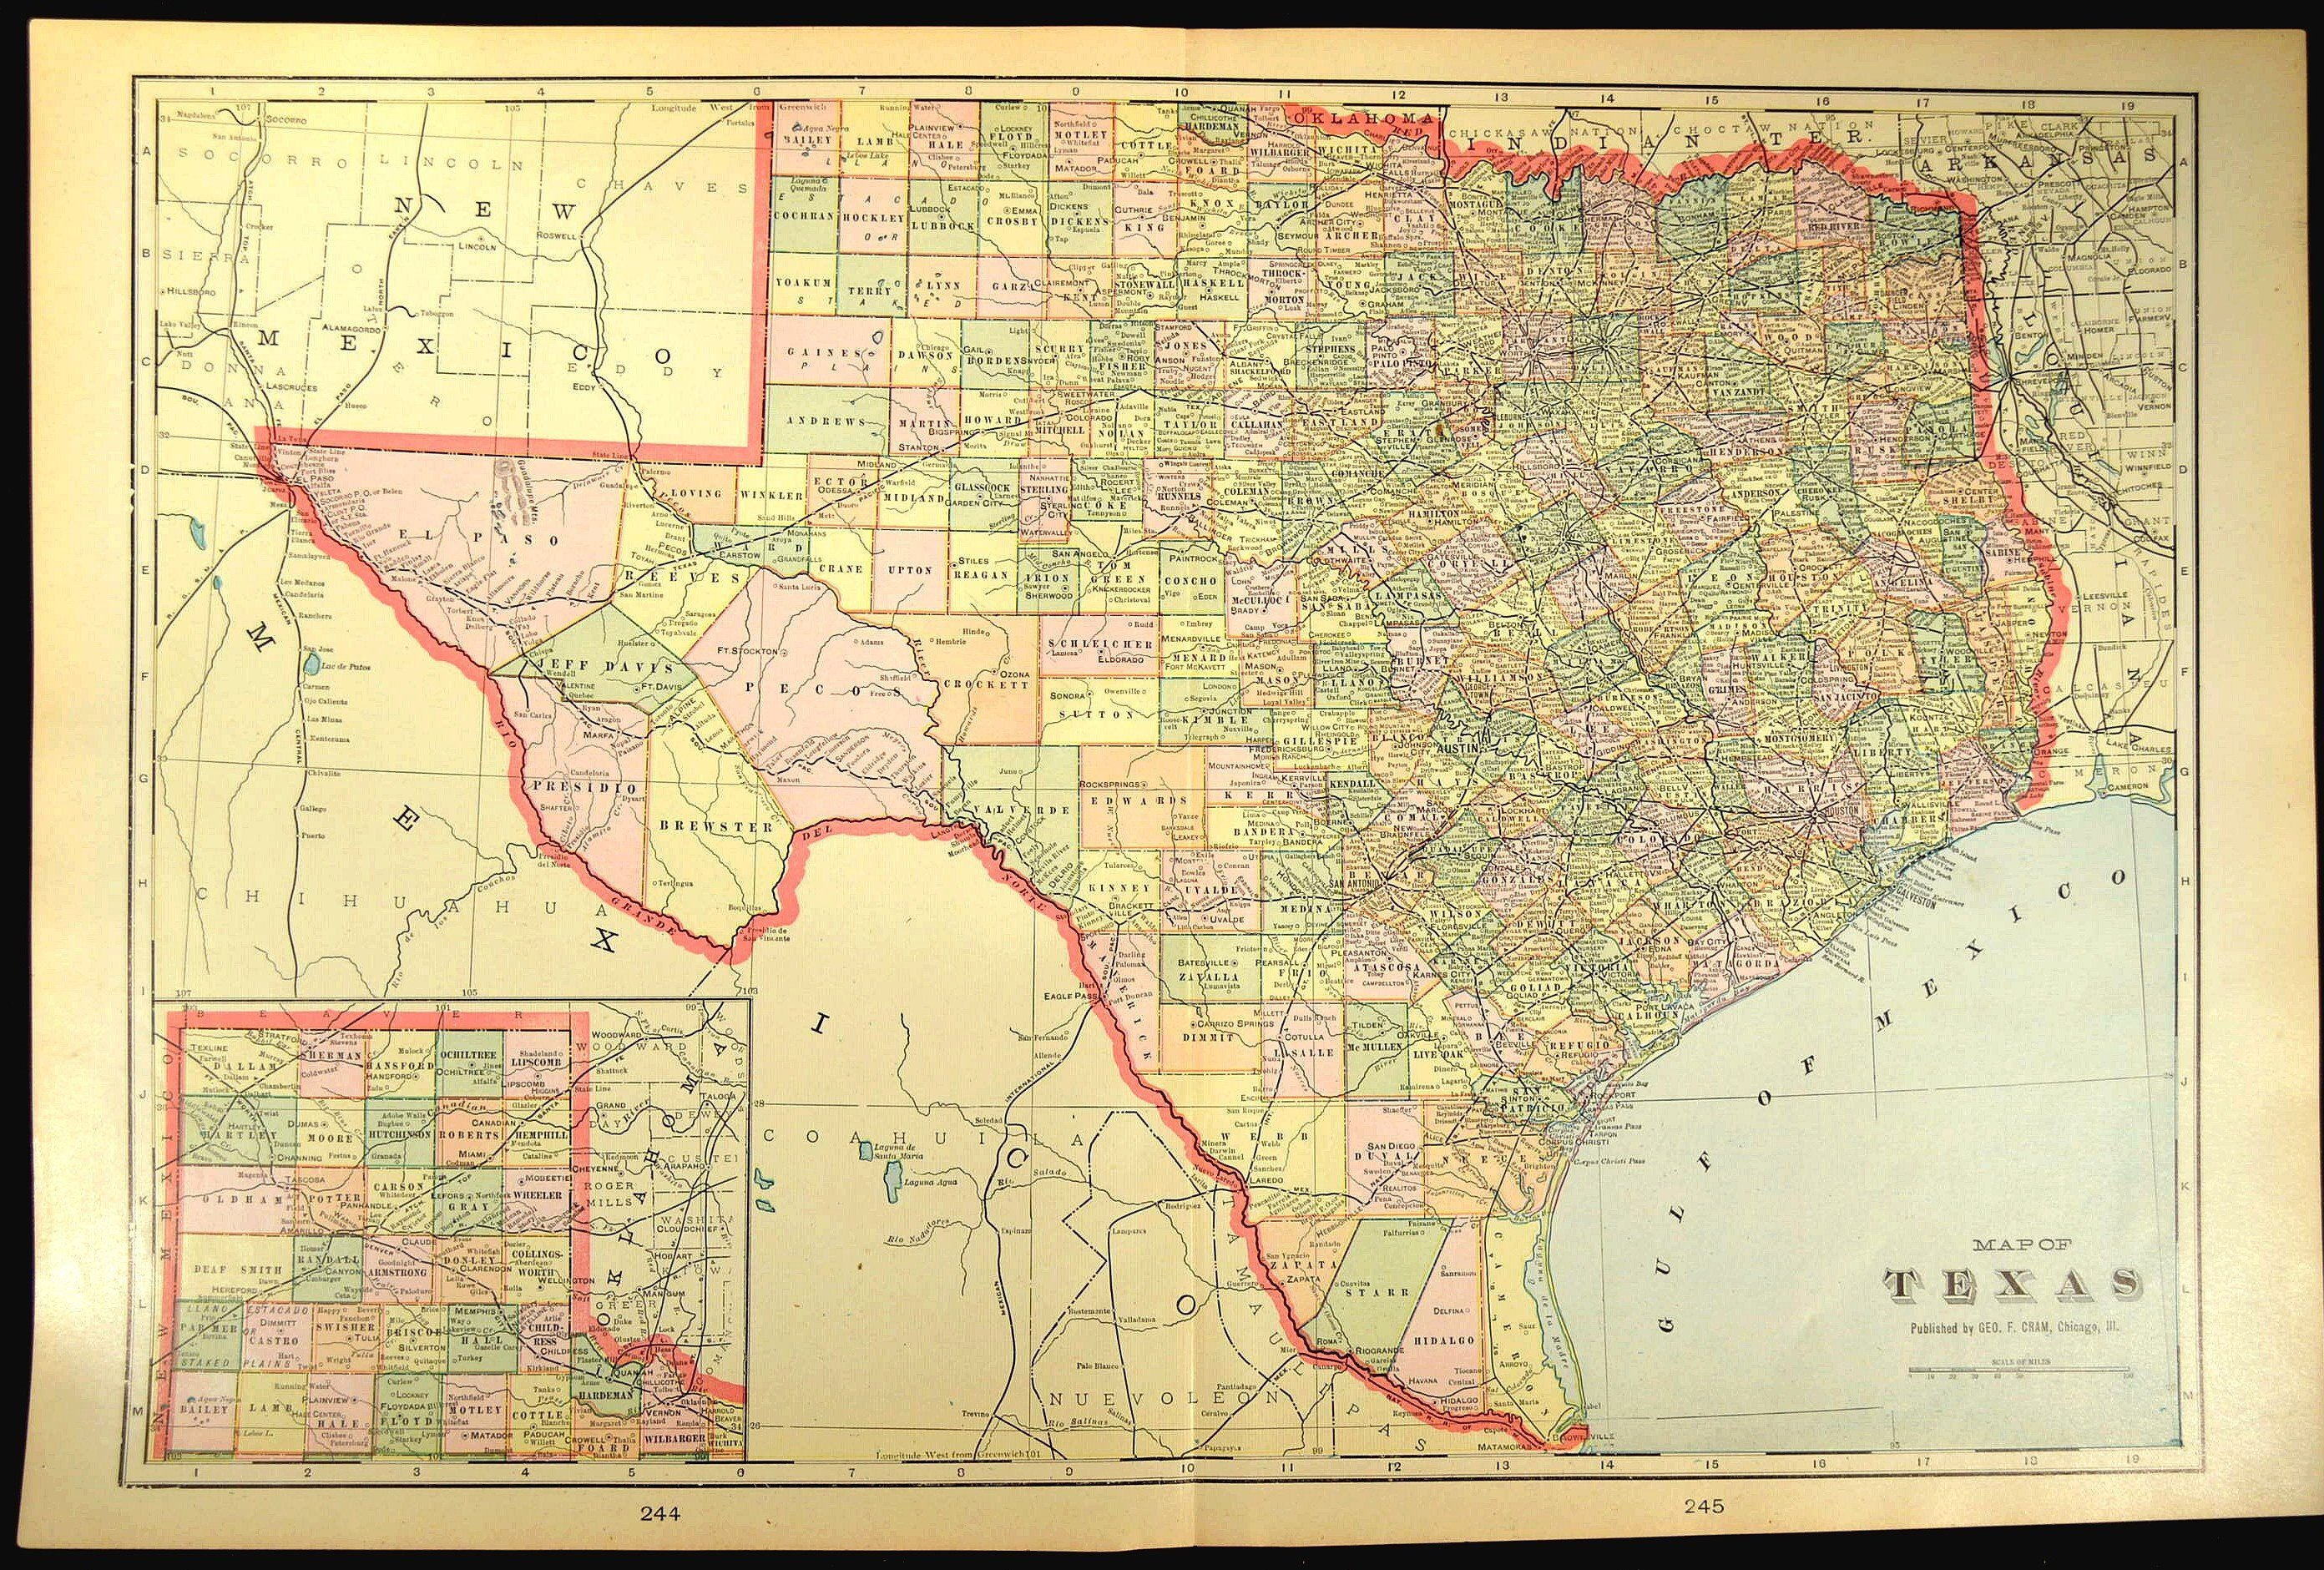 Texas Map Of Texas Wall Art Decor Large Antique Early 1900S | Etsy - Large Texas Wall Map